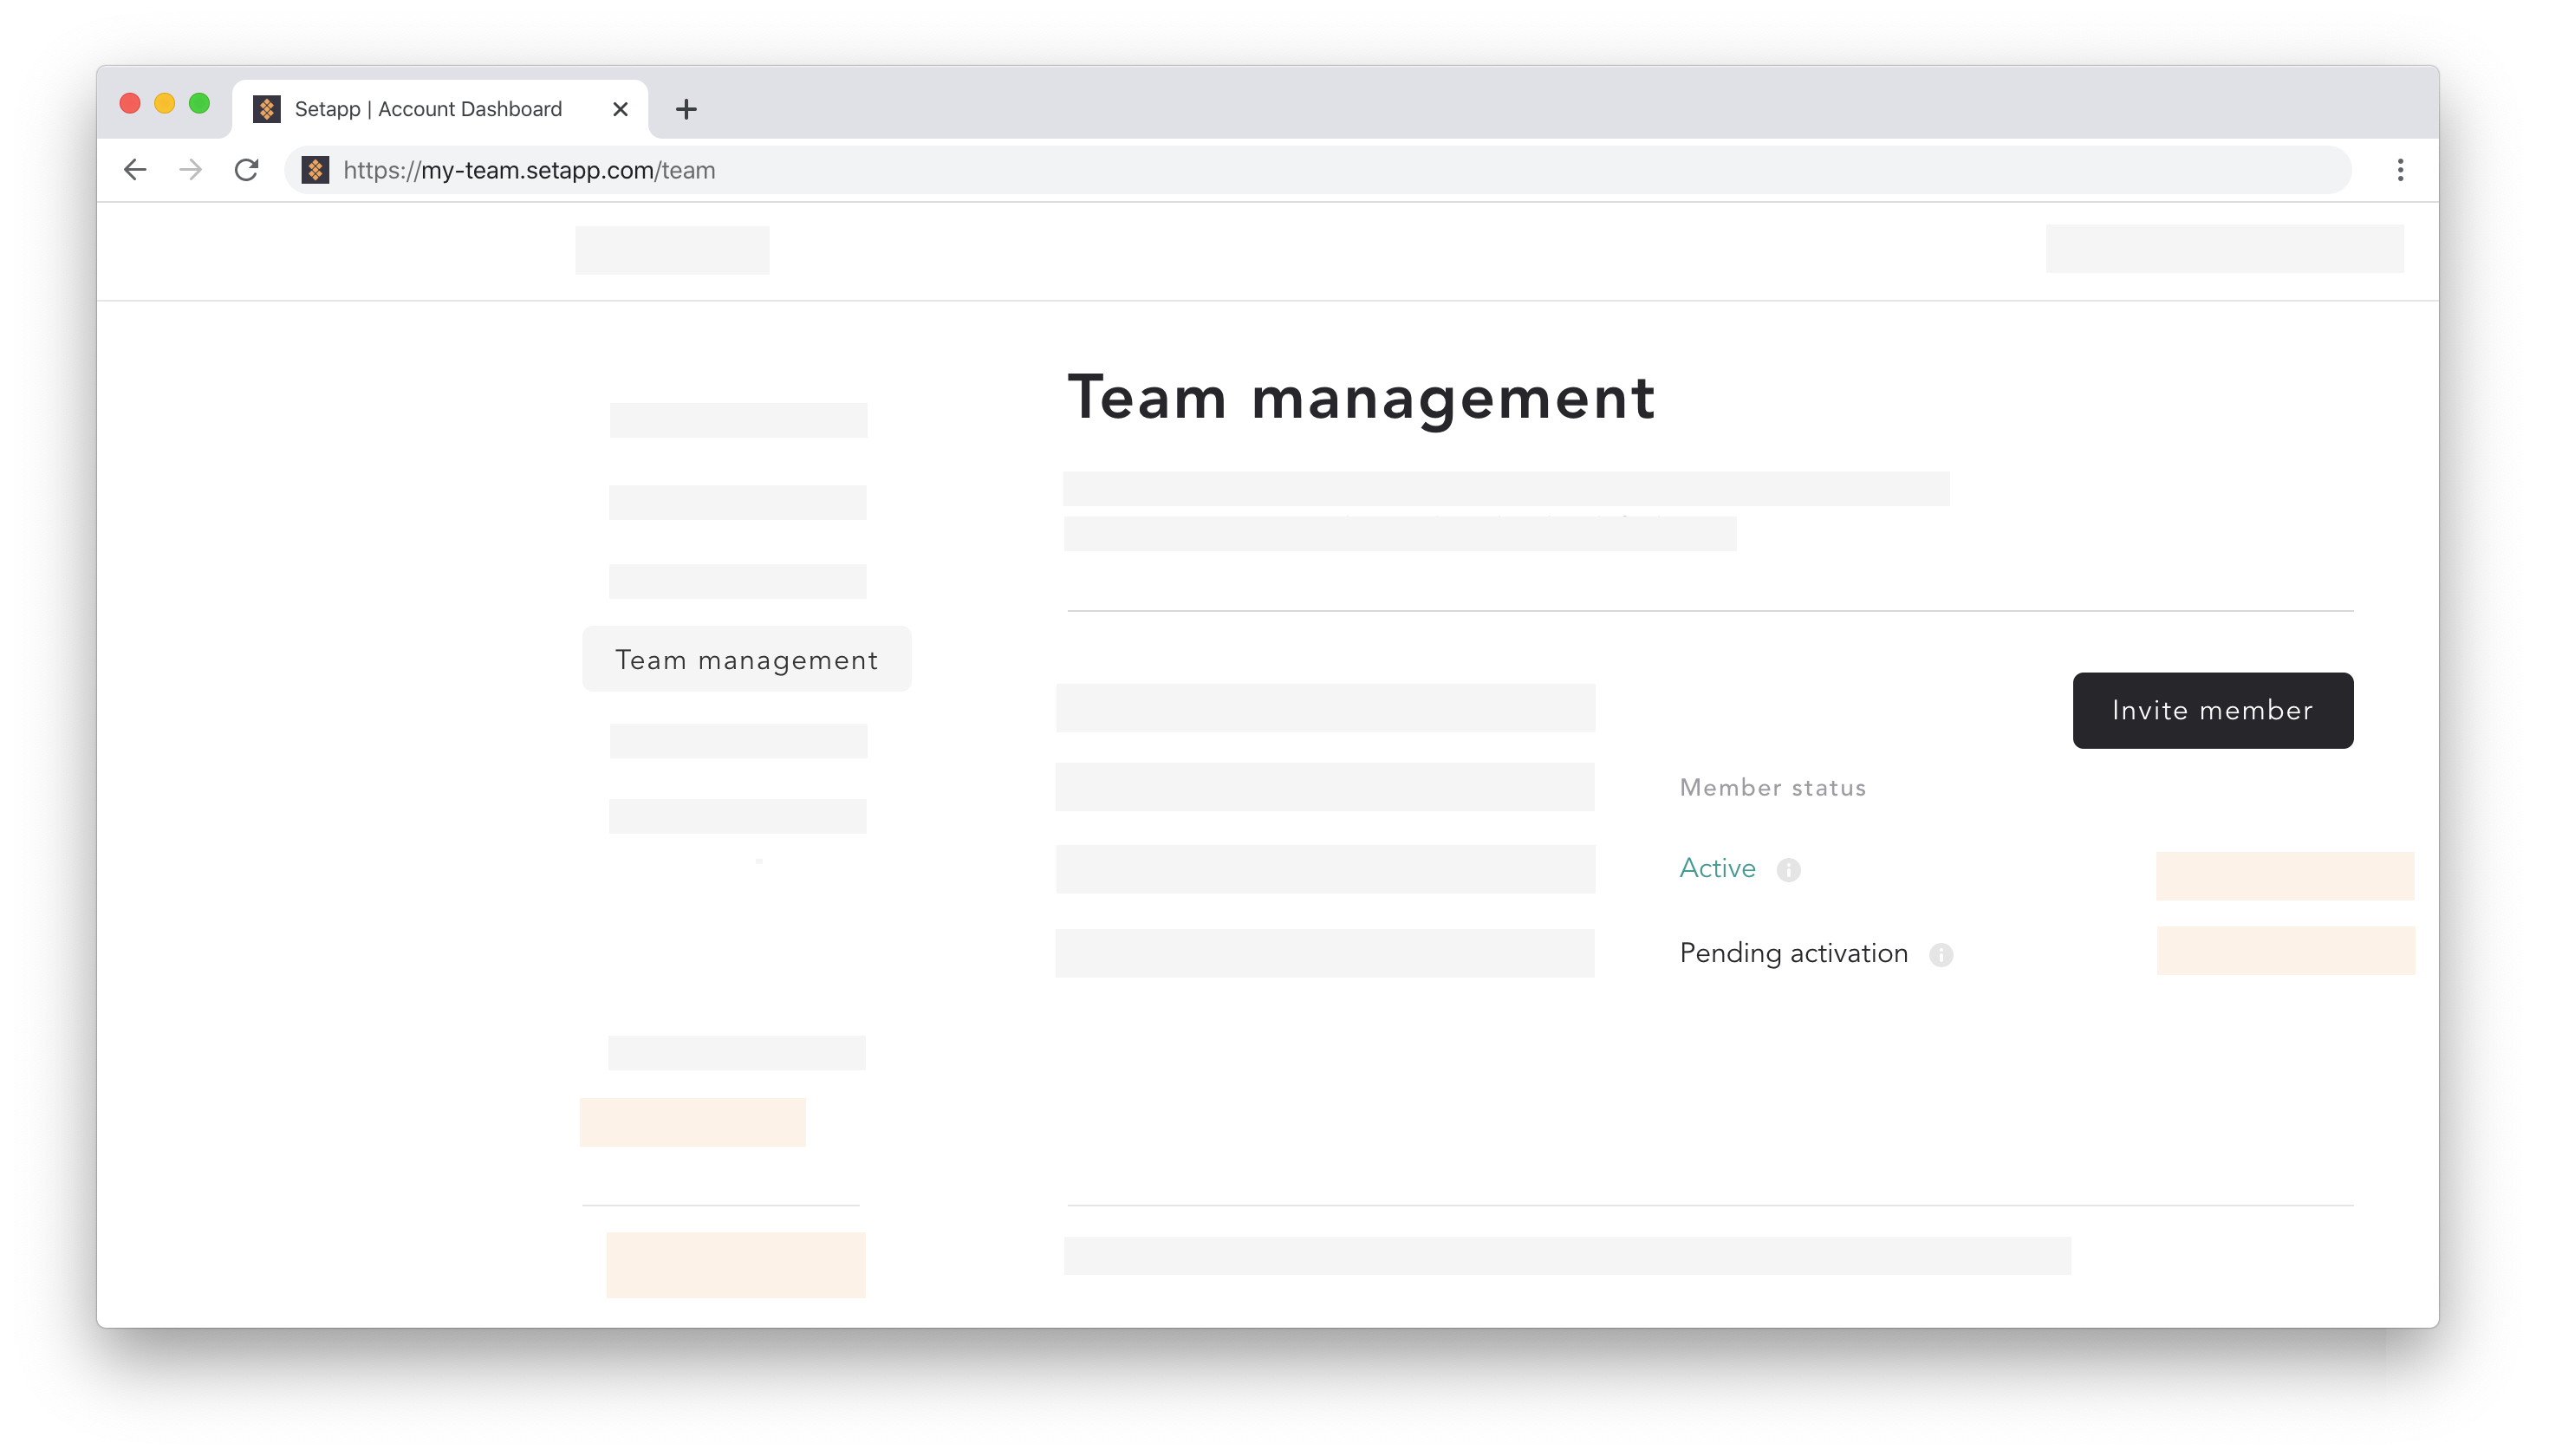 team-management-invite-member.png